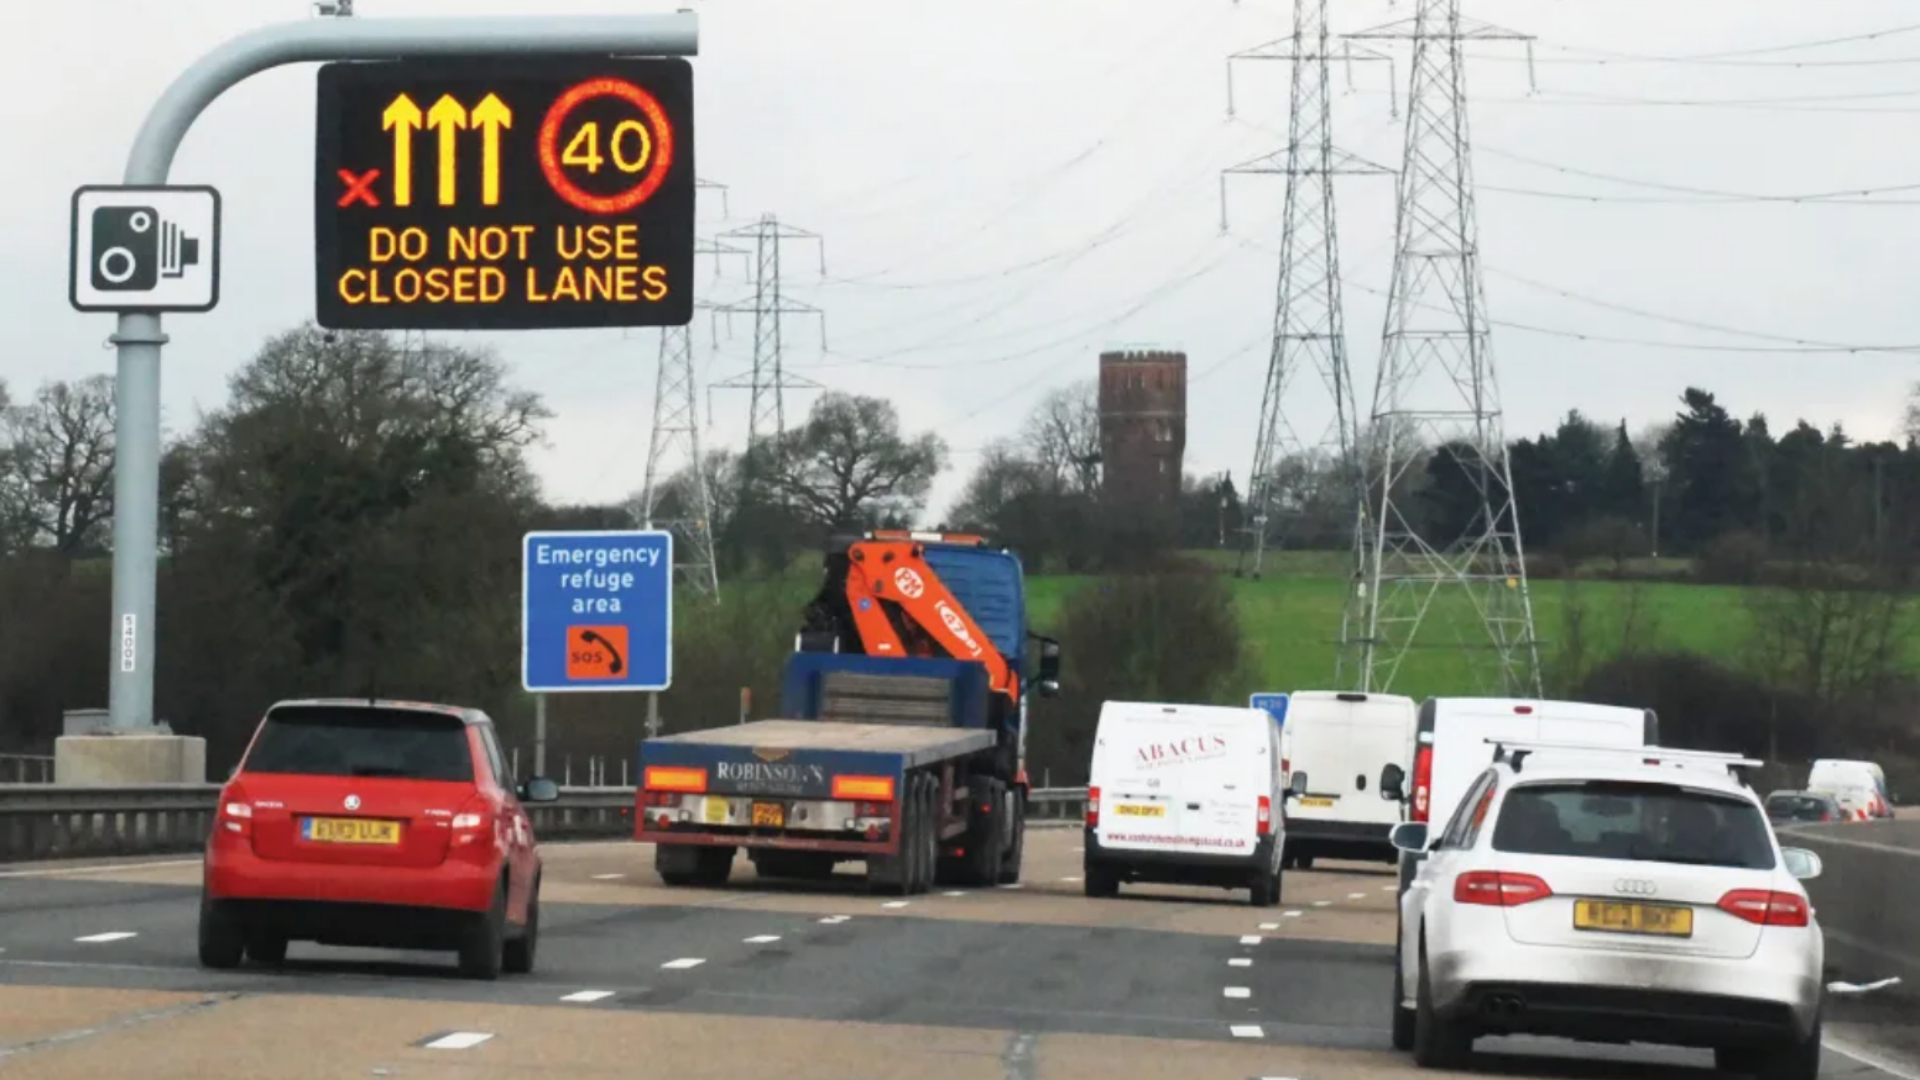 Have your say on proposed changes to the Highway Code